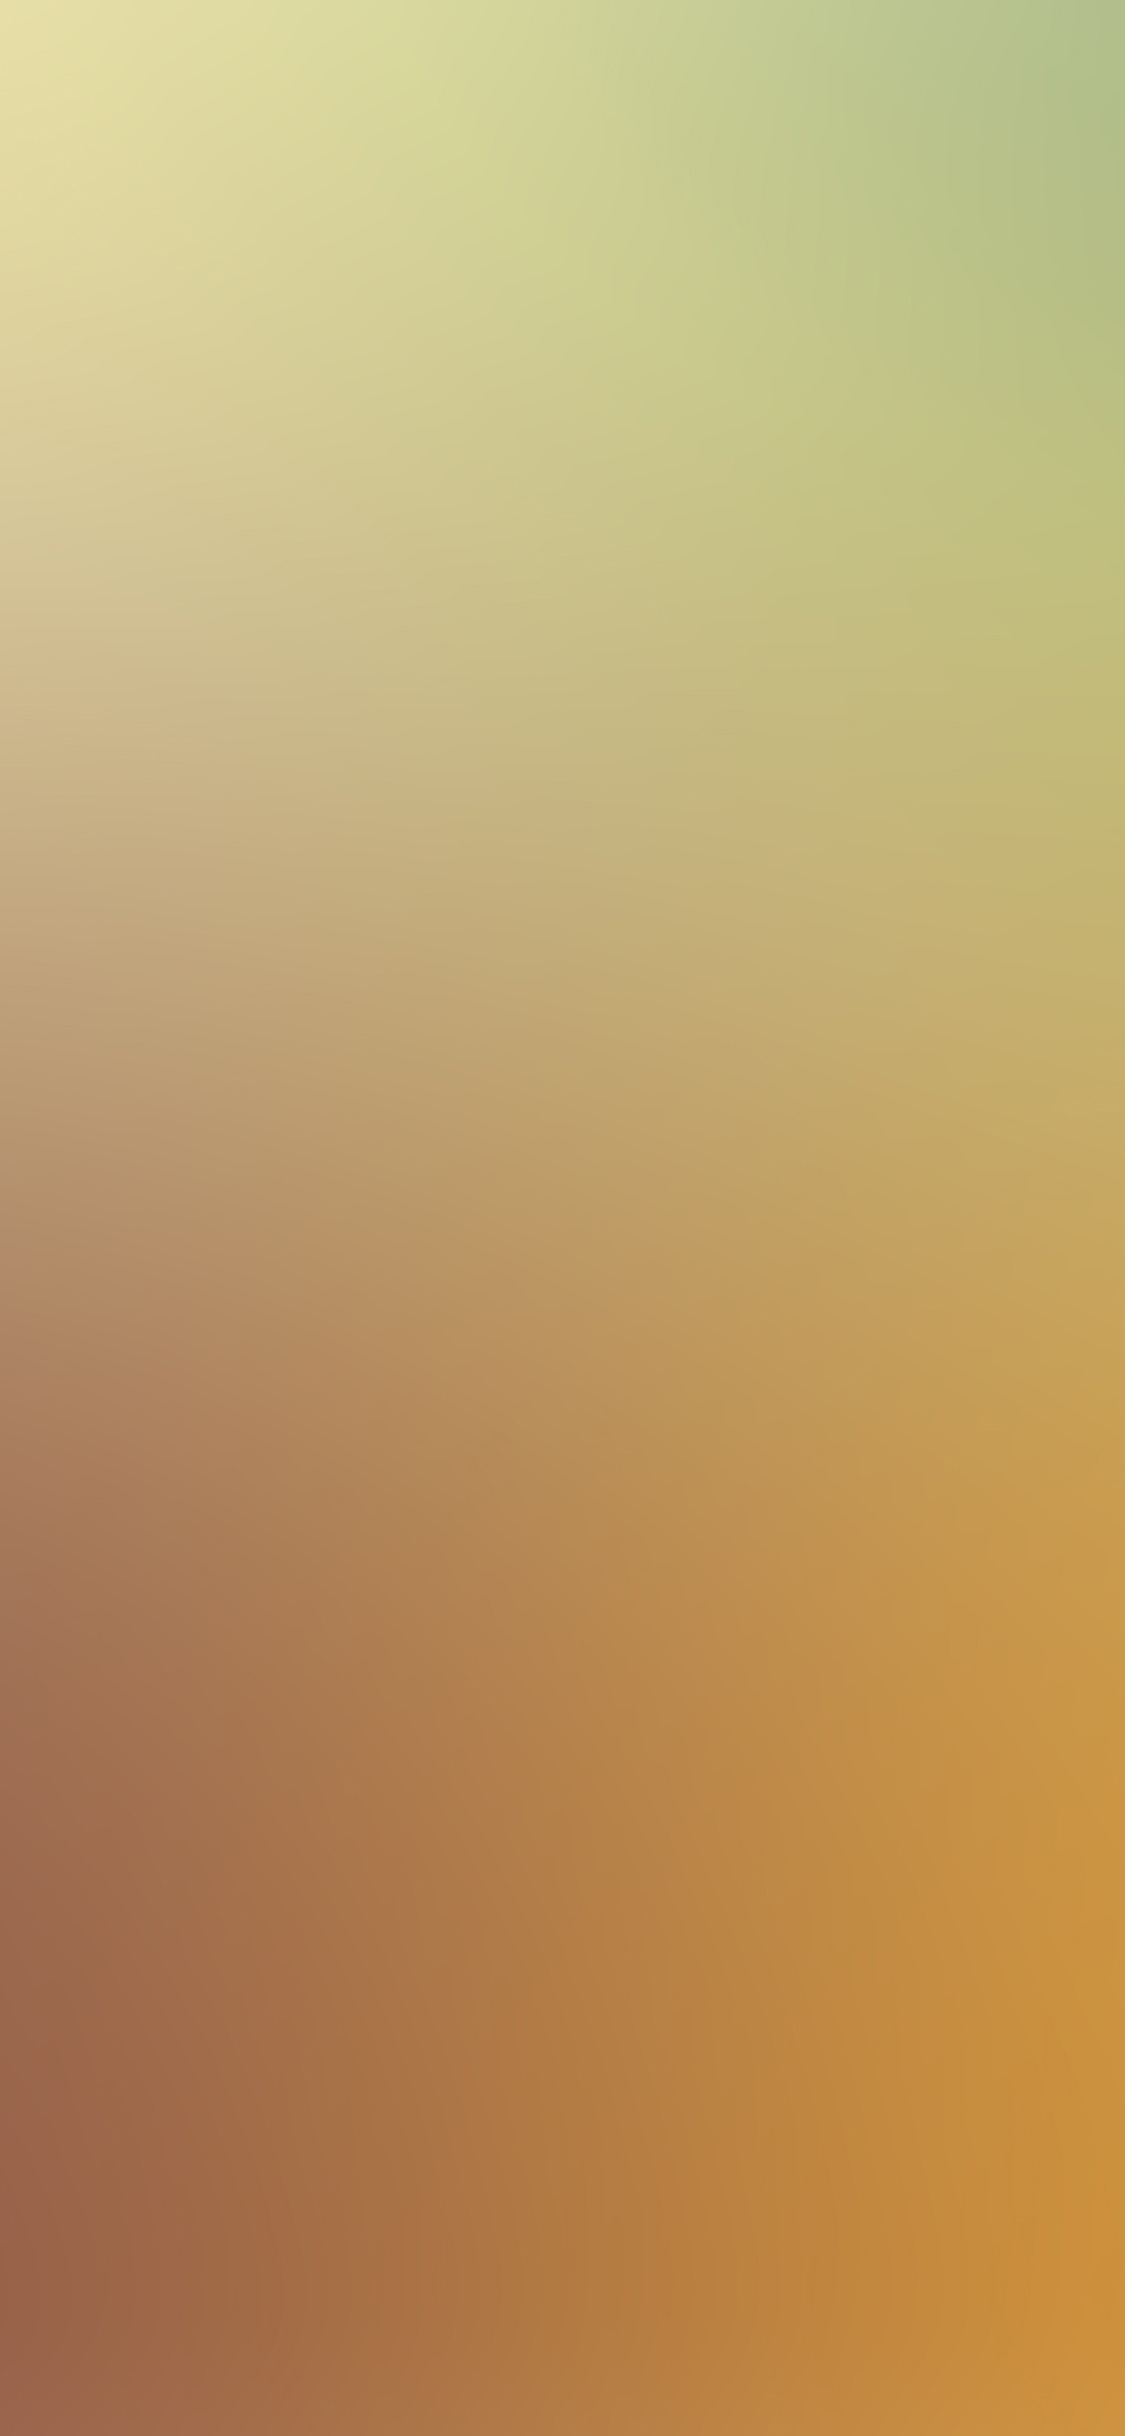 iPhoneXpapers.com-Apple-iPhone-wallpaper-sk02-yellow-orange-soft-blur-gradation